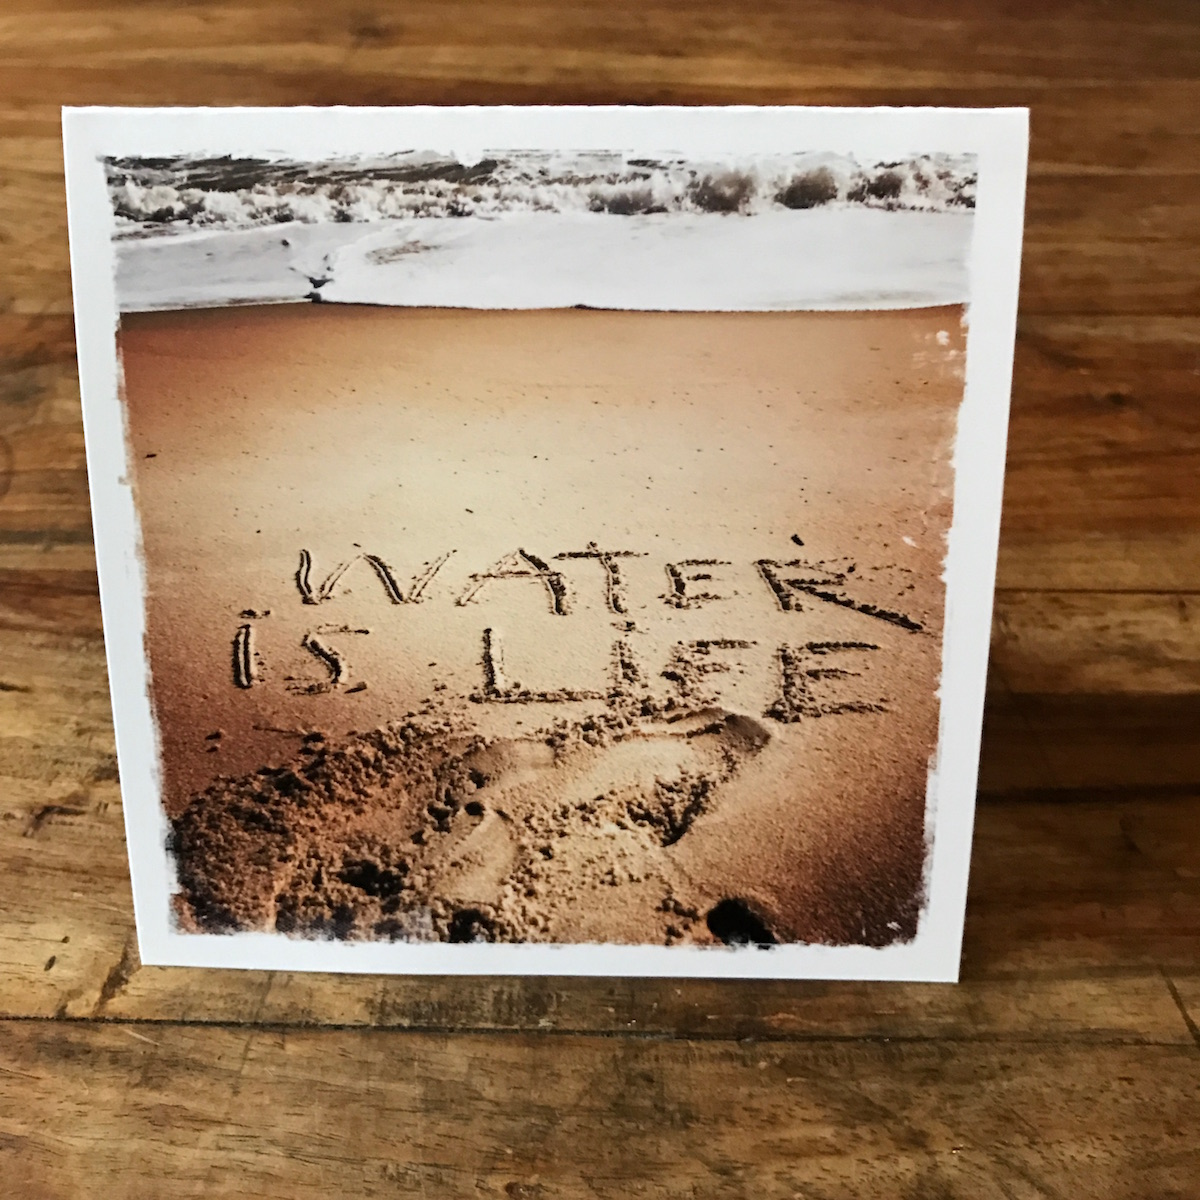 """Water is Life Note Card. Mni Wiconi - Lakota for """"Water is Life"""", photo by Barbara Sinclair"""